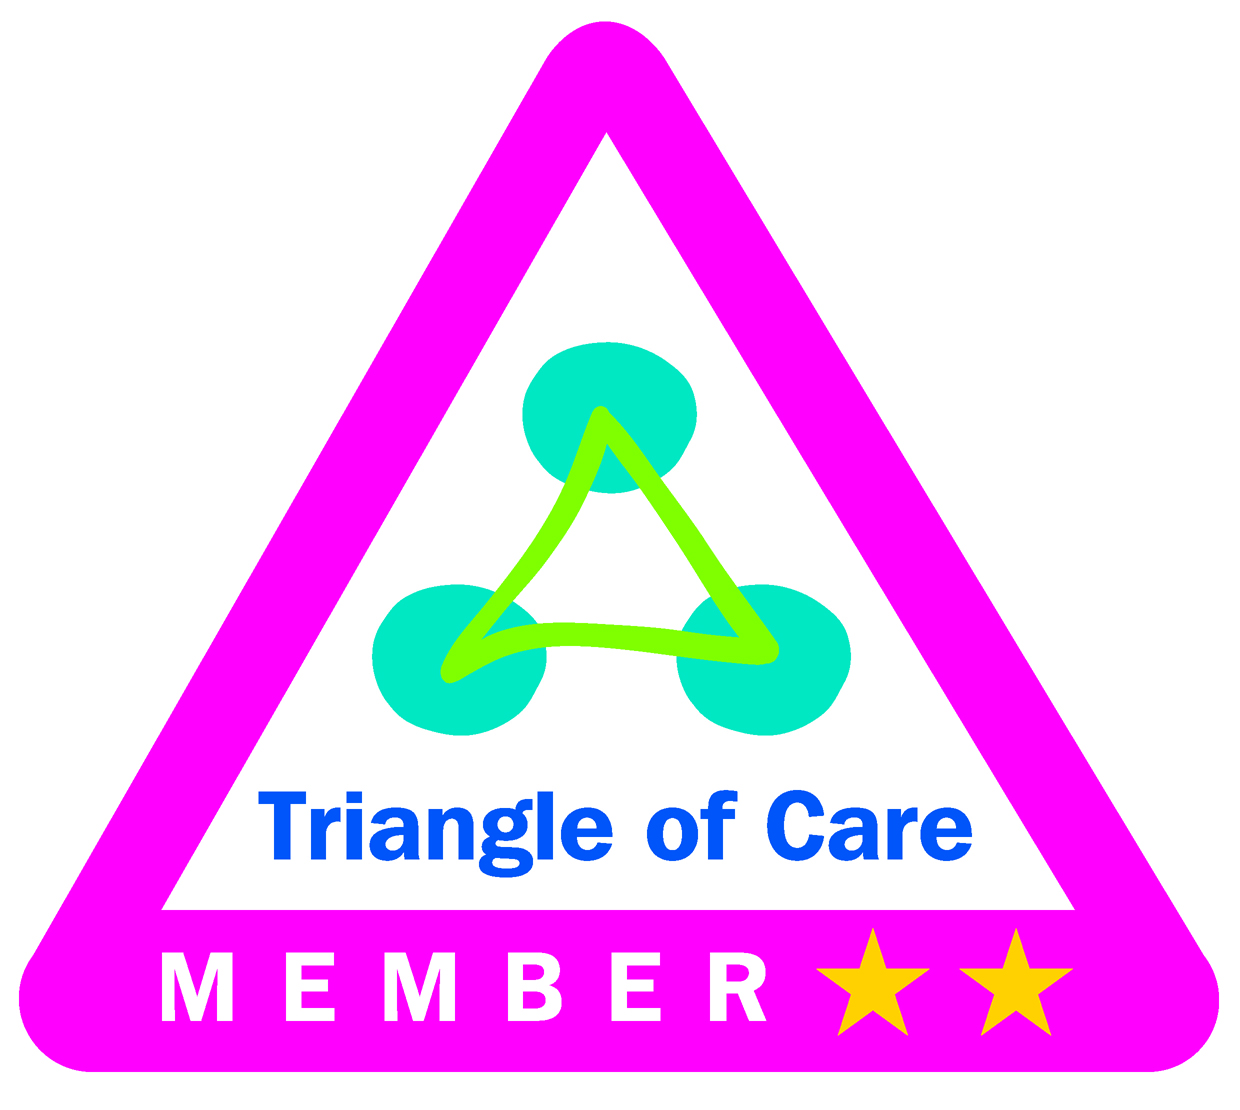 The Triangle of Care kite mark with two stars